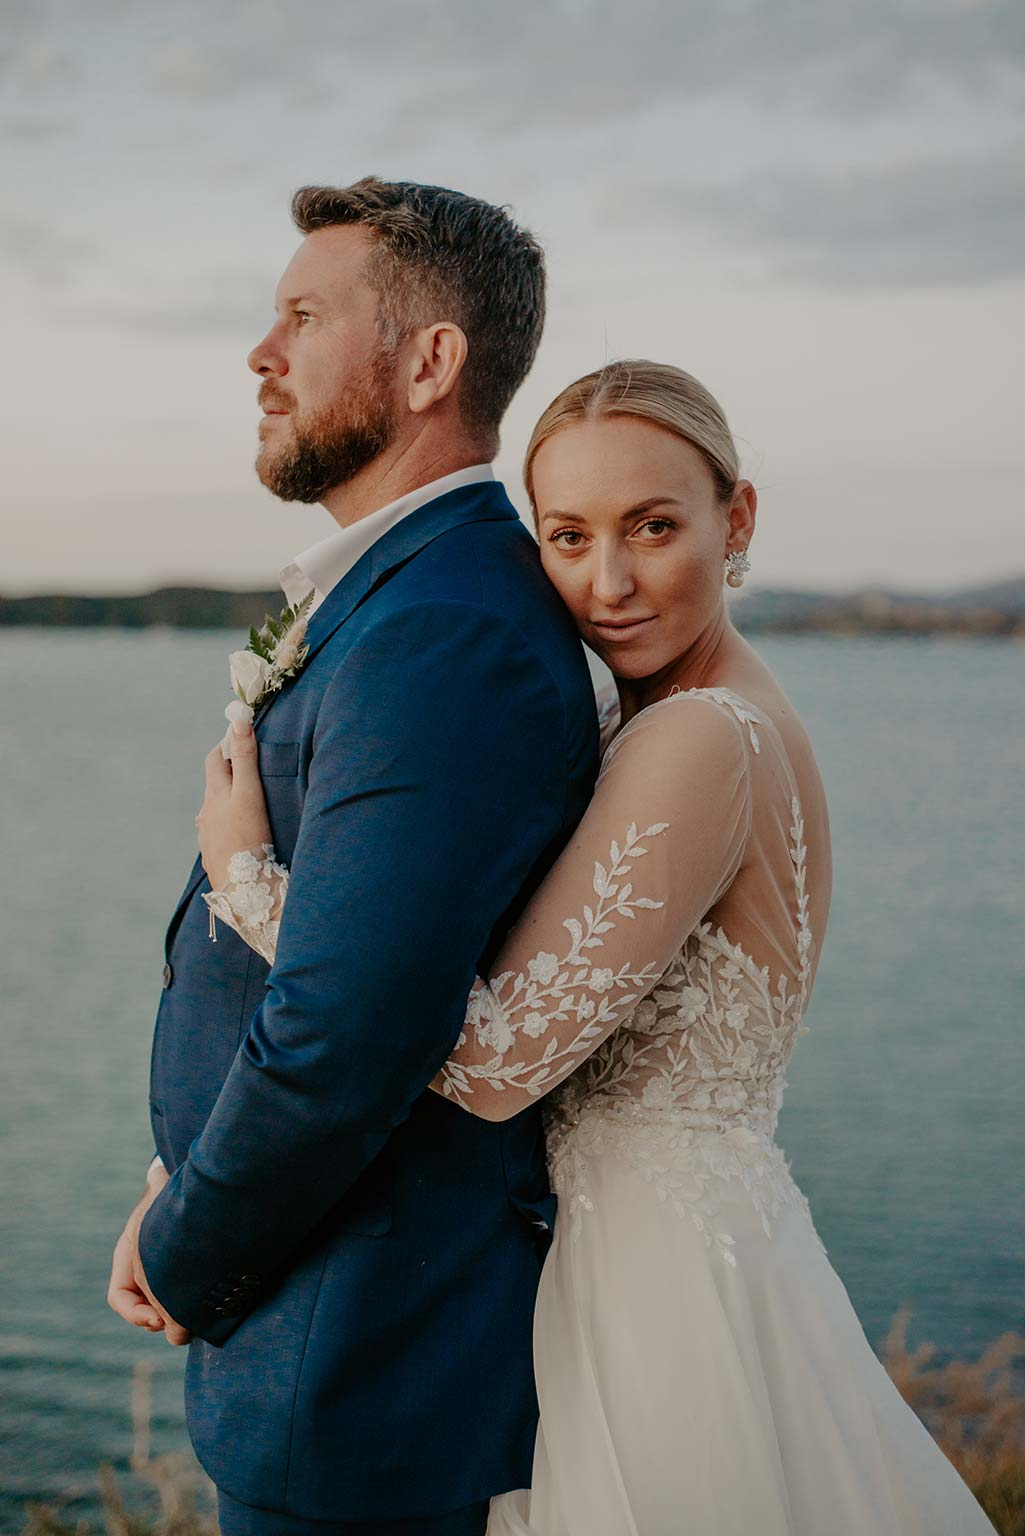 Vinka Design Features Real Weddings - bride embraces groom from the back - wearing a bespoke Makaira gown with silk-chiffon and tulle overskirt giving her a beautiful train which could be removed later on to reveal a floor length party dress